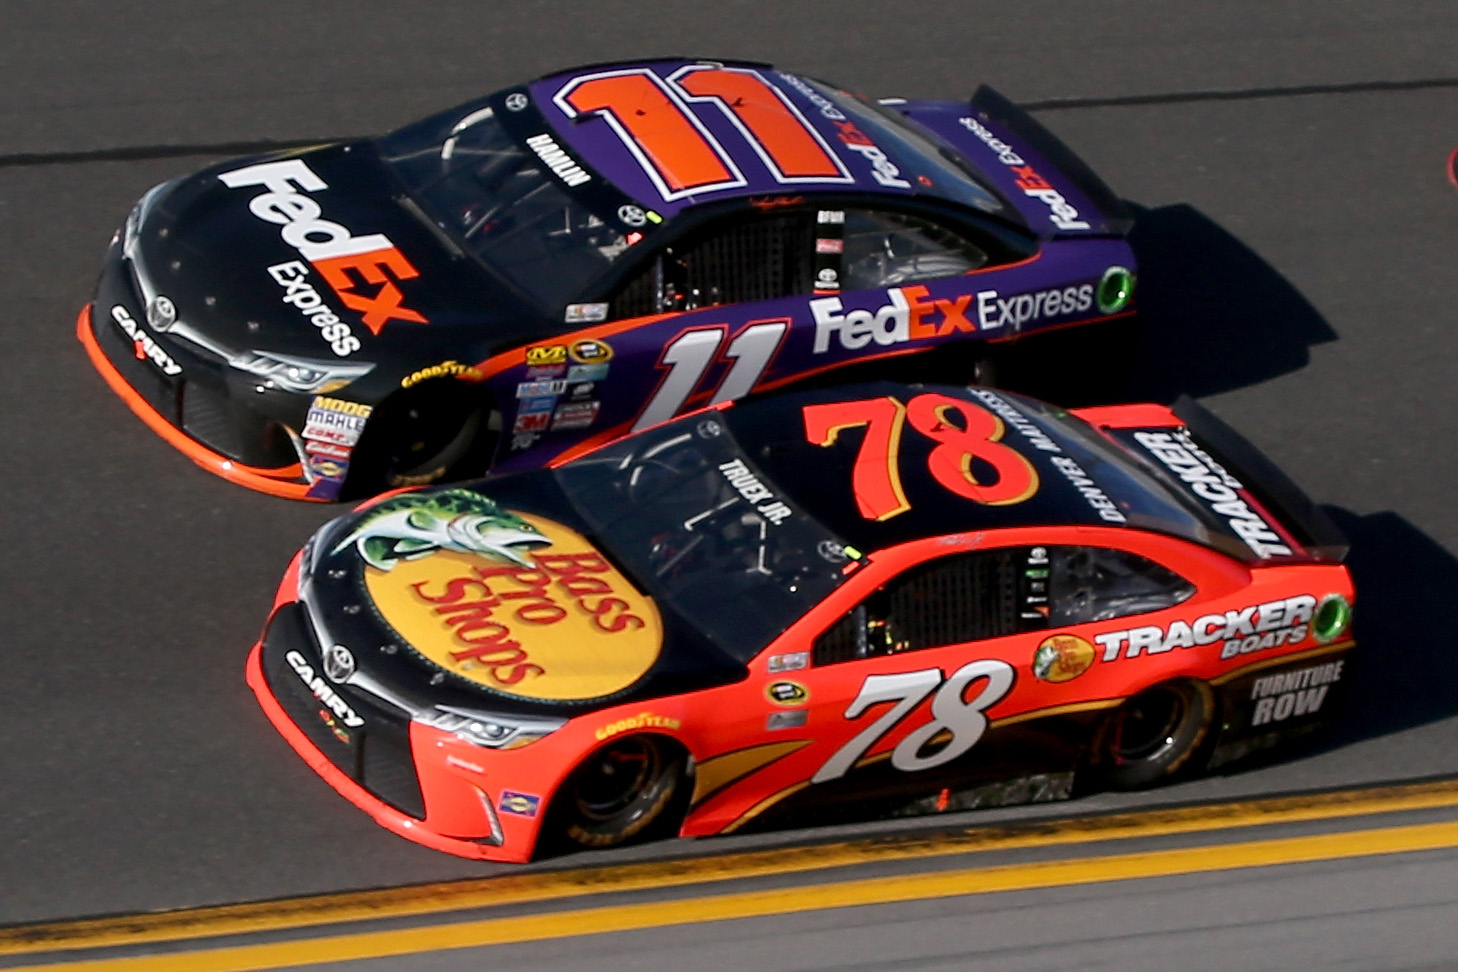 Denny Hamlin, driver of the #11 FedEx Express Toyota, takes the checkered flag ahead of Martin Truex Jr., driver of the #78 Bass Pro Shops/Tracker Boats Toyota, to win the NASCAR Sprint Cup Series DAYTONA 500 at Daytona International Speedway on February 21, 2016 in Daytona Beach, Florida. (Photo by Jonathan Ferrey/Getty Images)